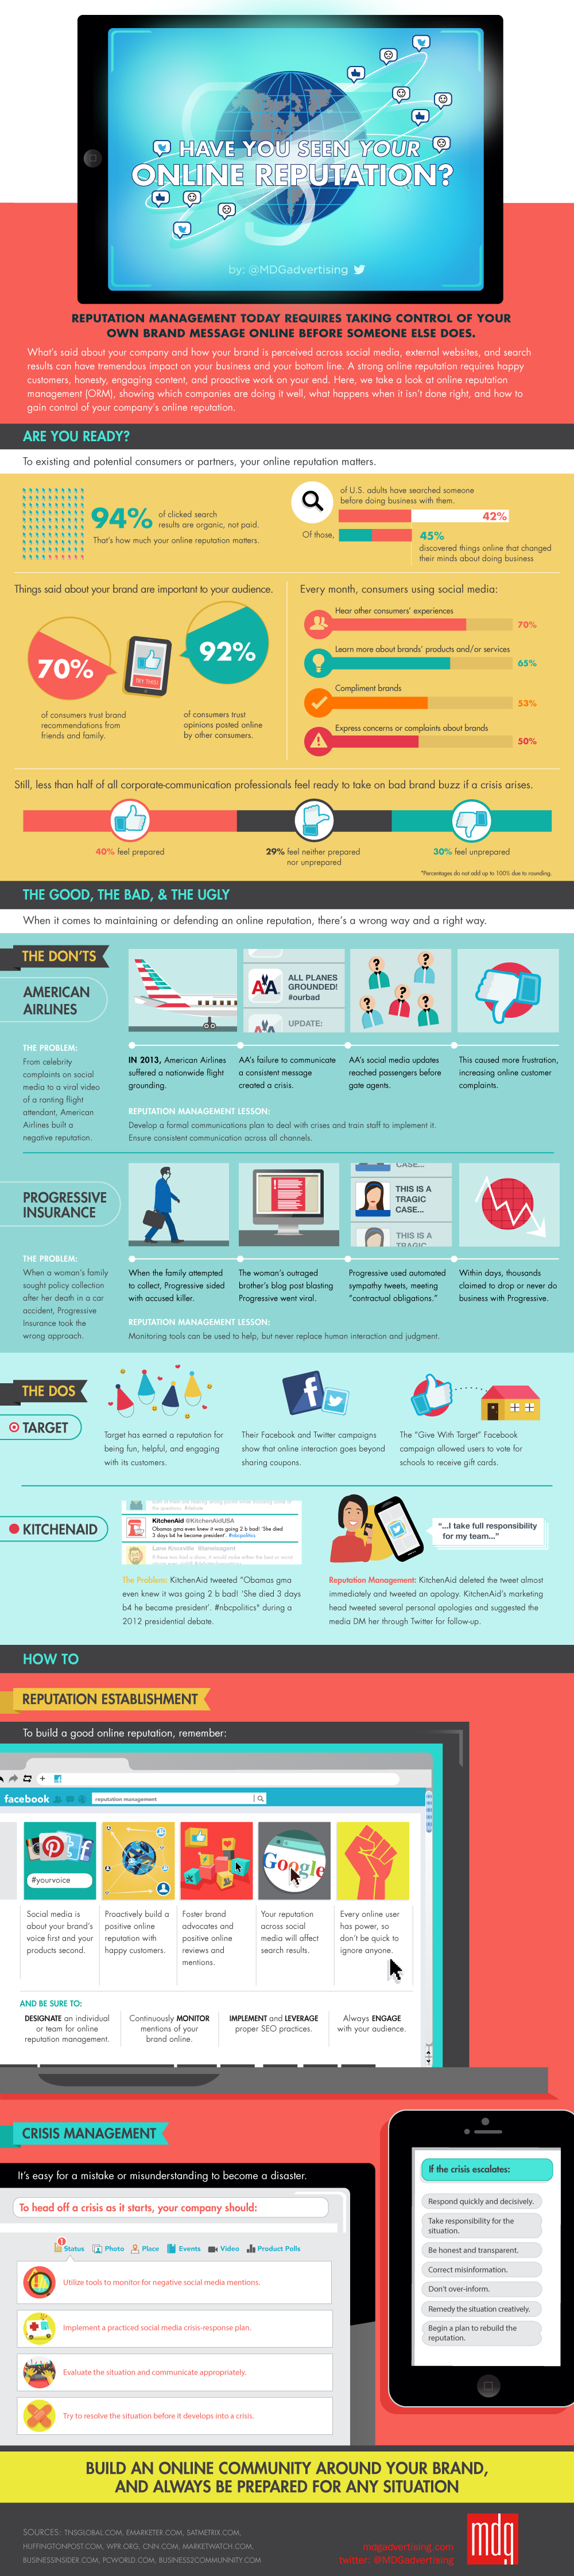 How To Build A Good Online Reputation [infographic]